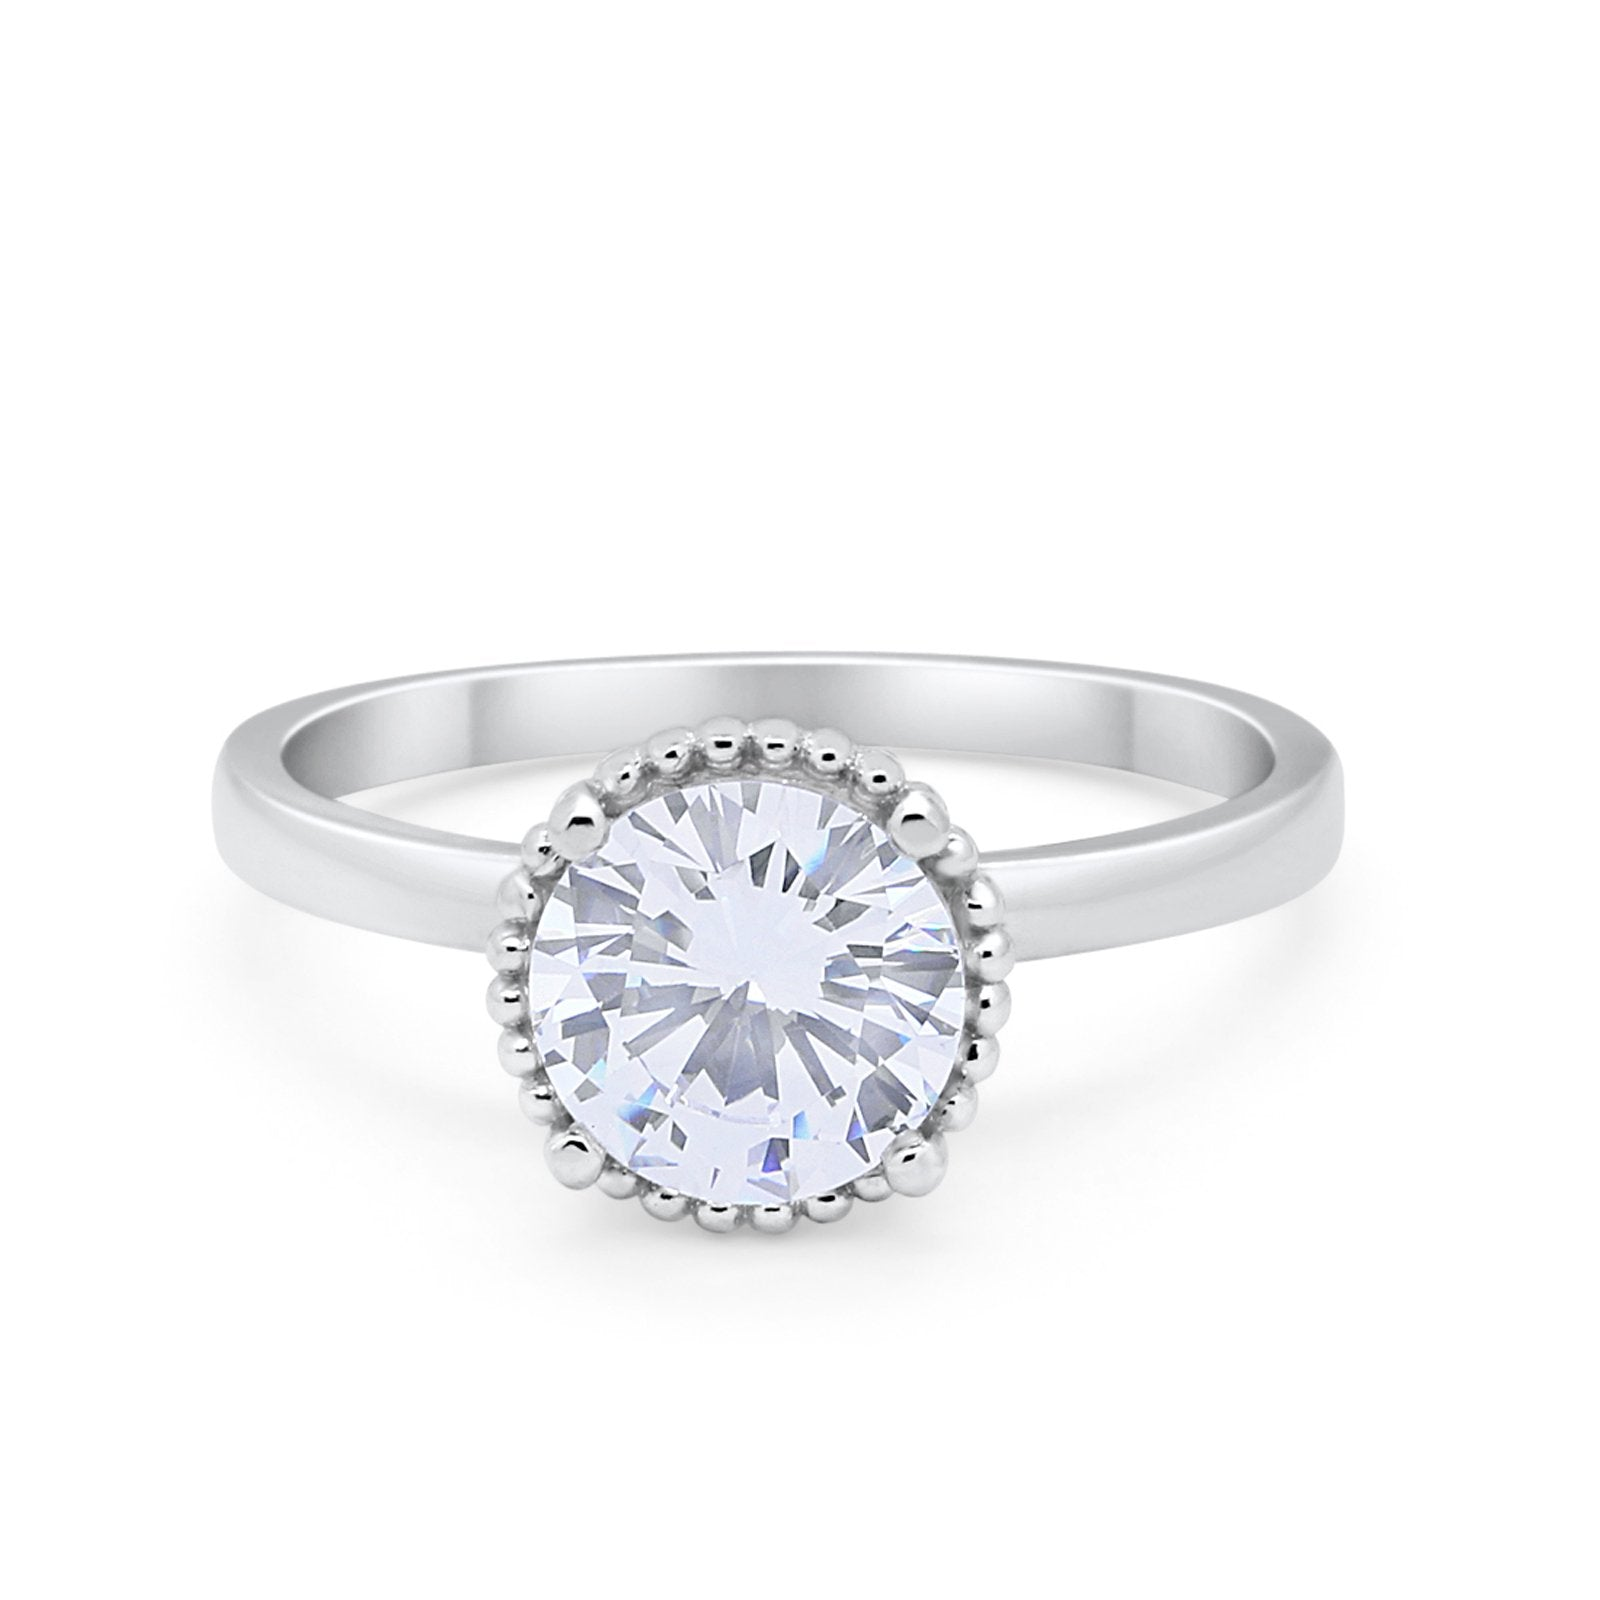 Solitaire Wedding Engagement Art Deco Bridal Ring Round Cubic Zirconia 925 Sterling Silver